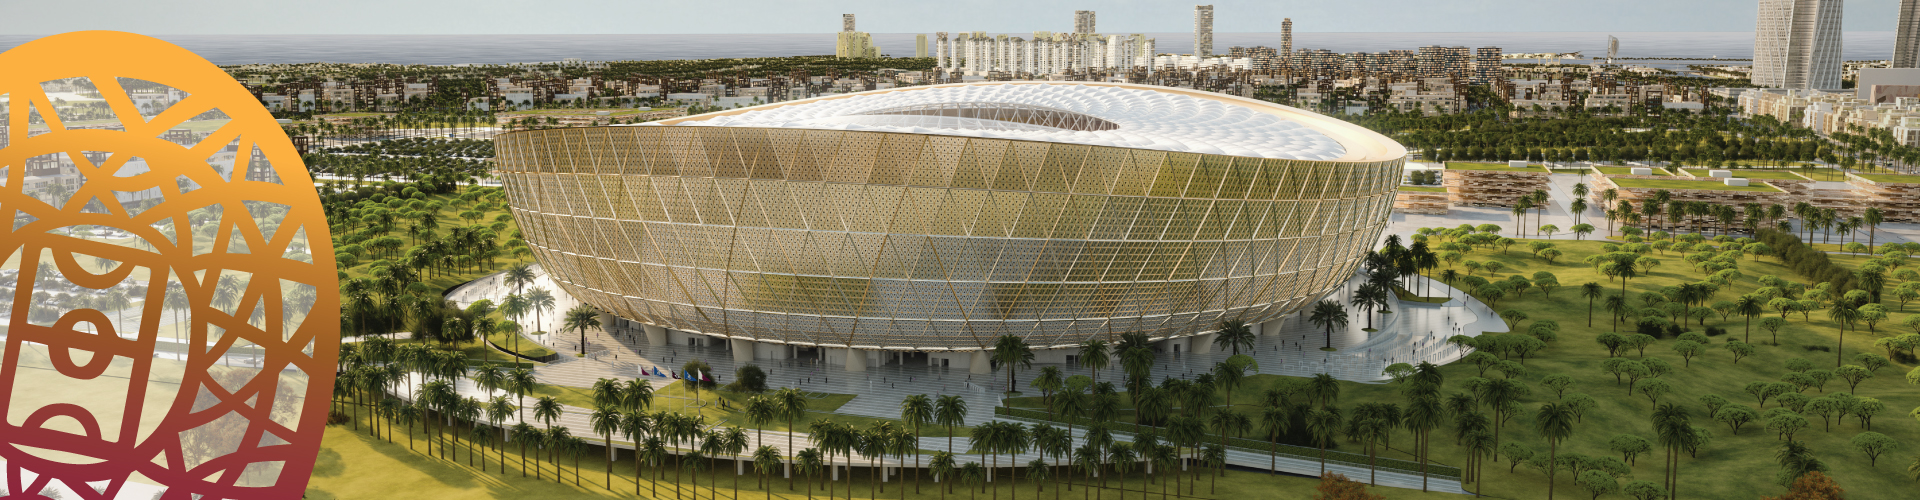 FIFA World Cup Stadium - On-Going